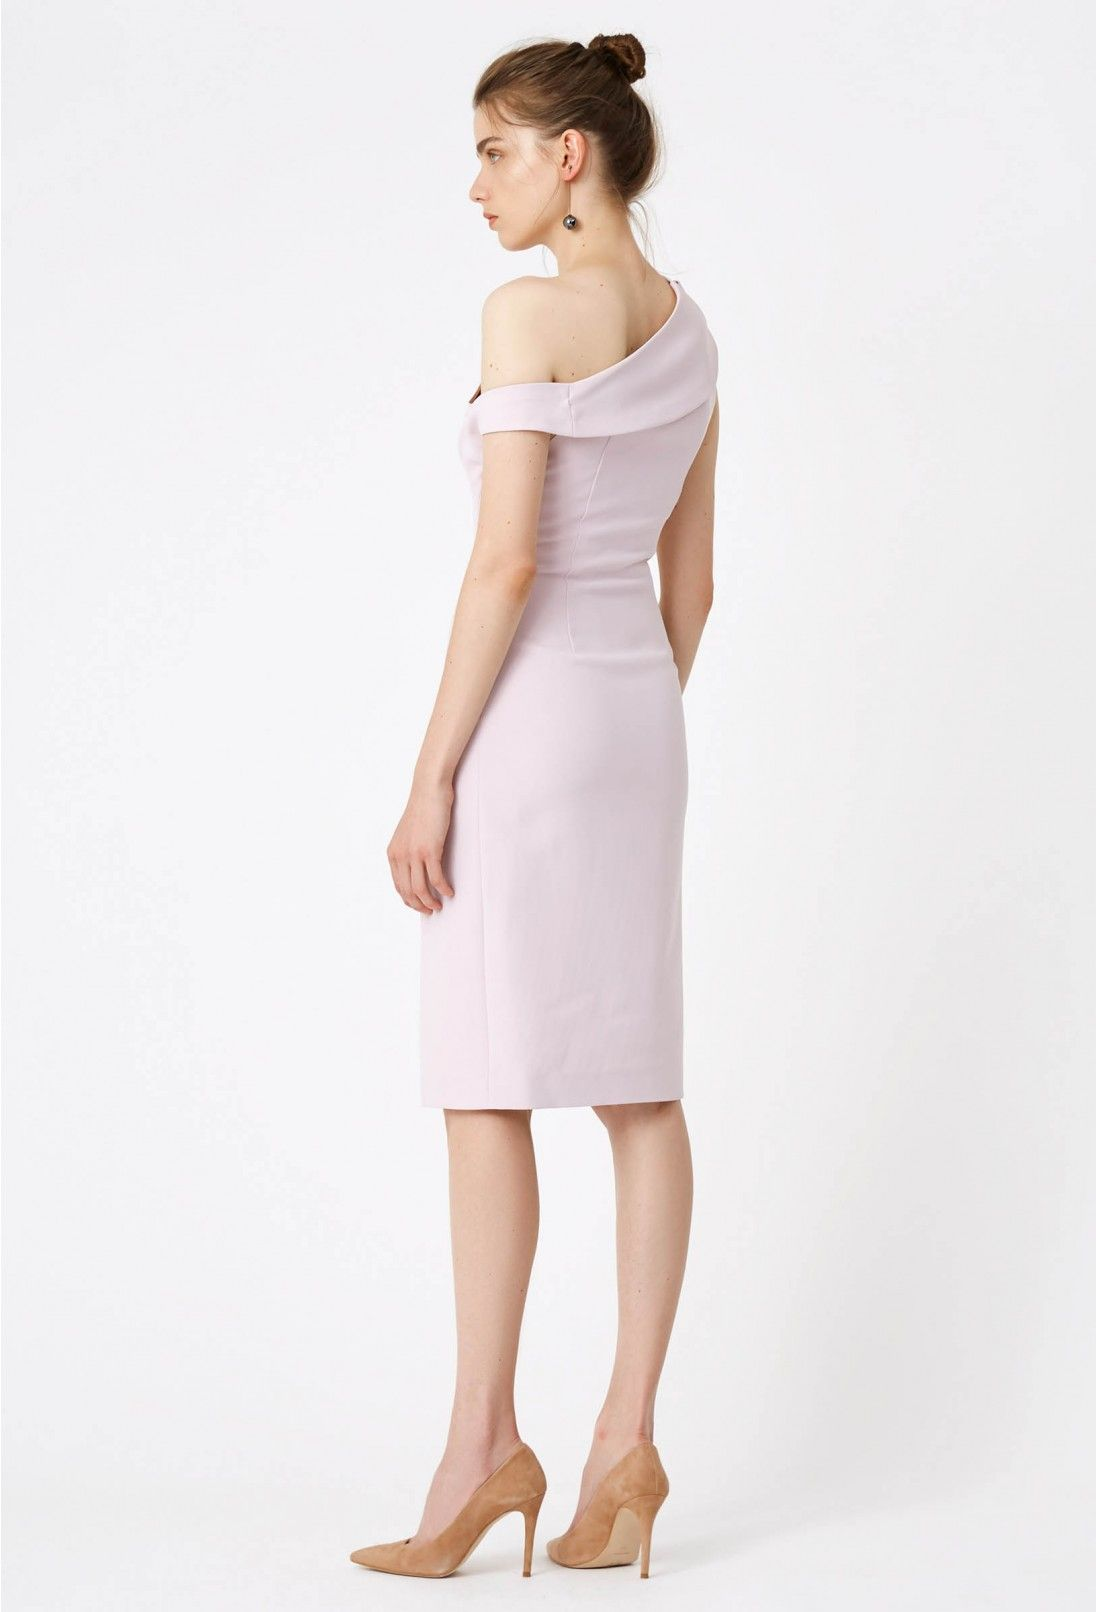 Didion Structured Knee Length Dress Pale Lilac Knee Length Dress Dresses Fitted Midi Dress [ 1612 x 1096 Pixel ]